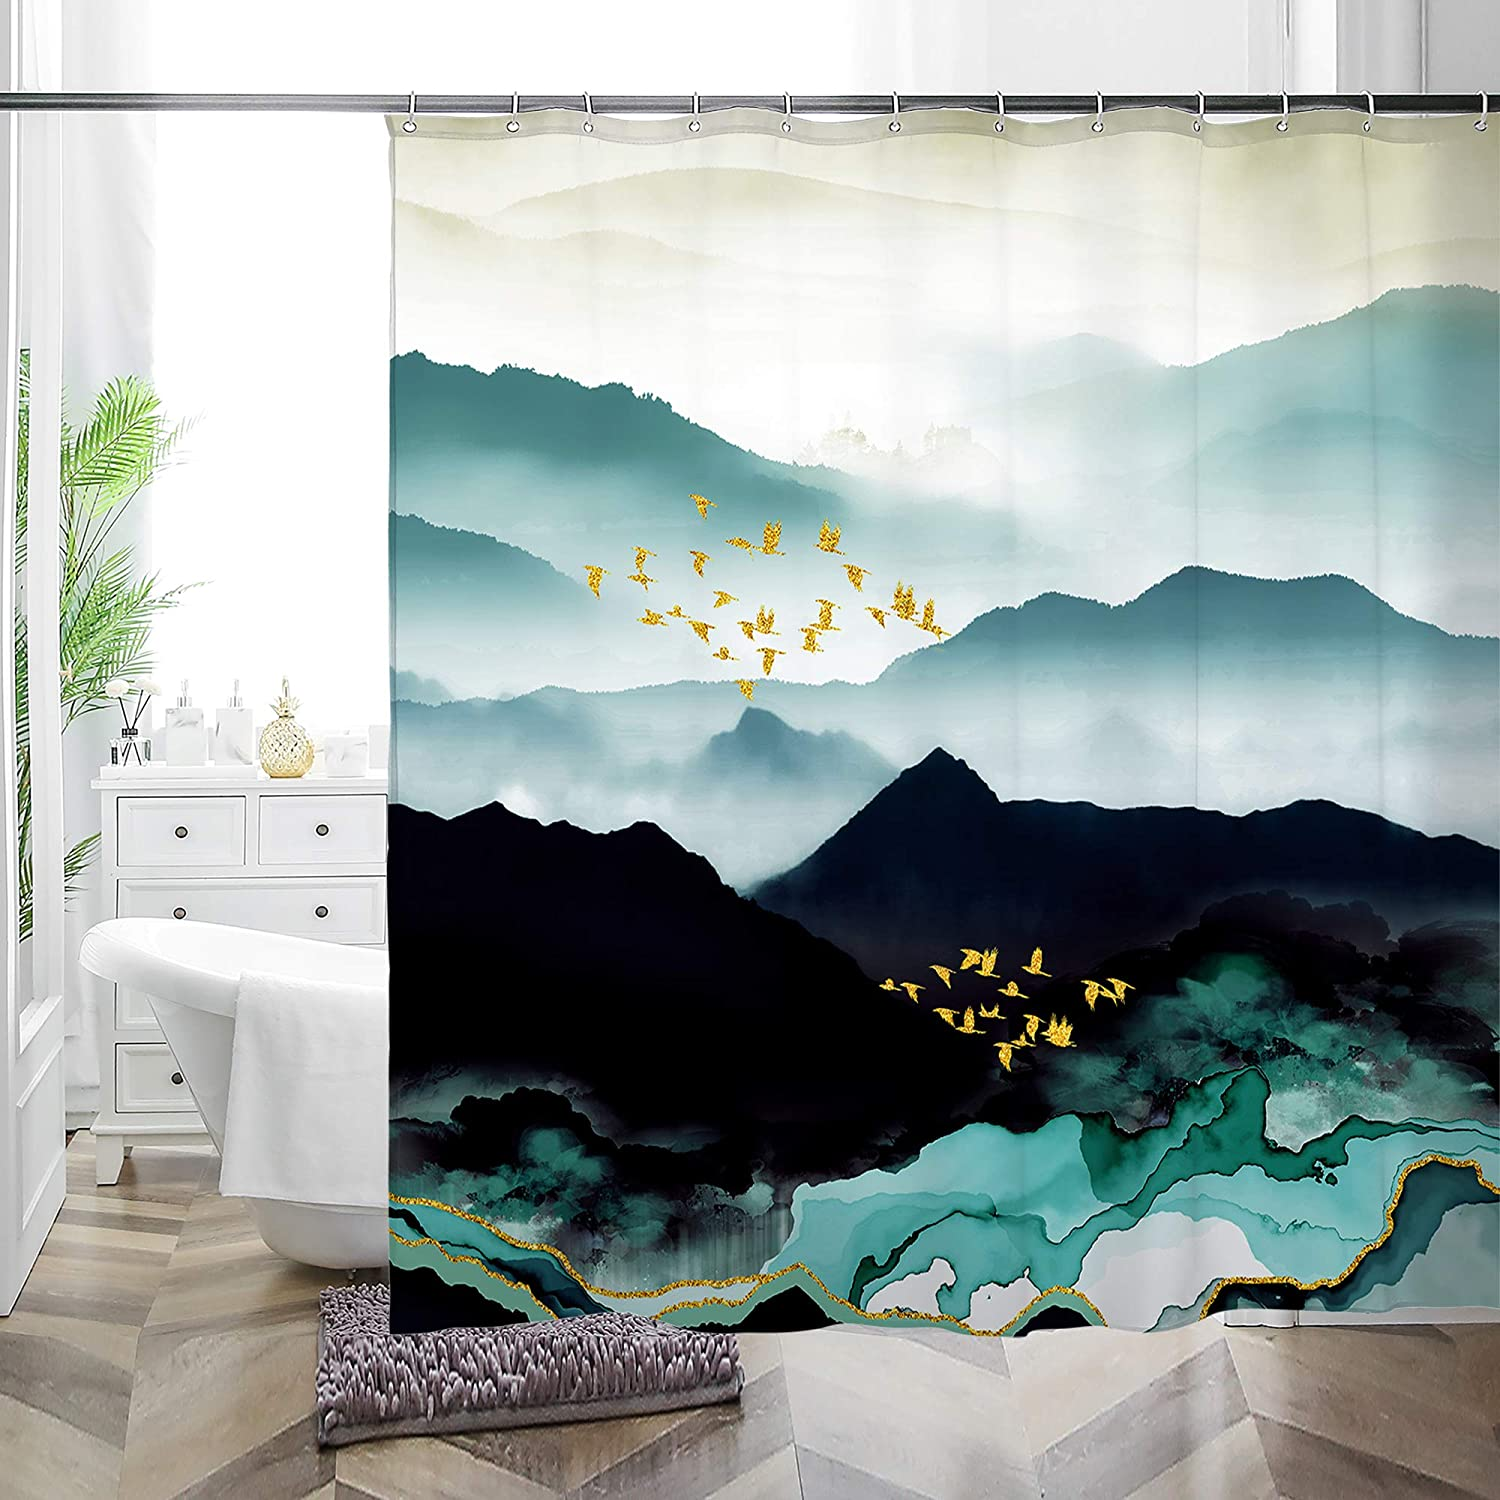 MACOFE Teal Mountain Shower Curtain Set with Hooks,Fabric Black Abstract Shower Curtain for Bathroom Decor,Nature Scenery Waterproof Bathroom Curtain 72x72 Inch